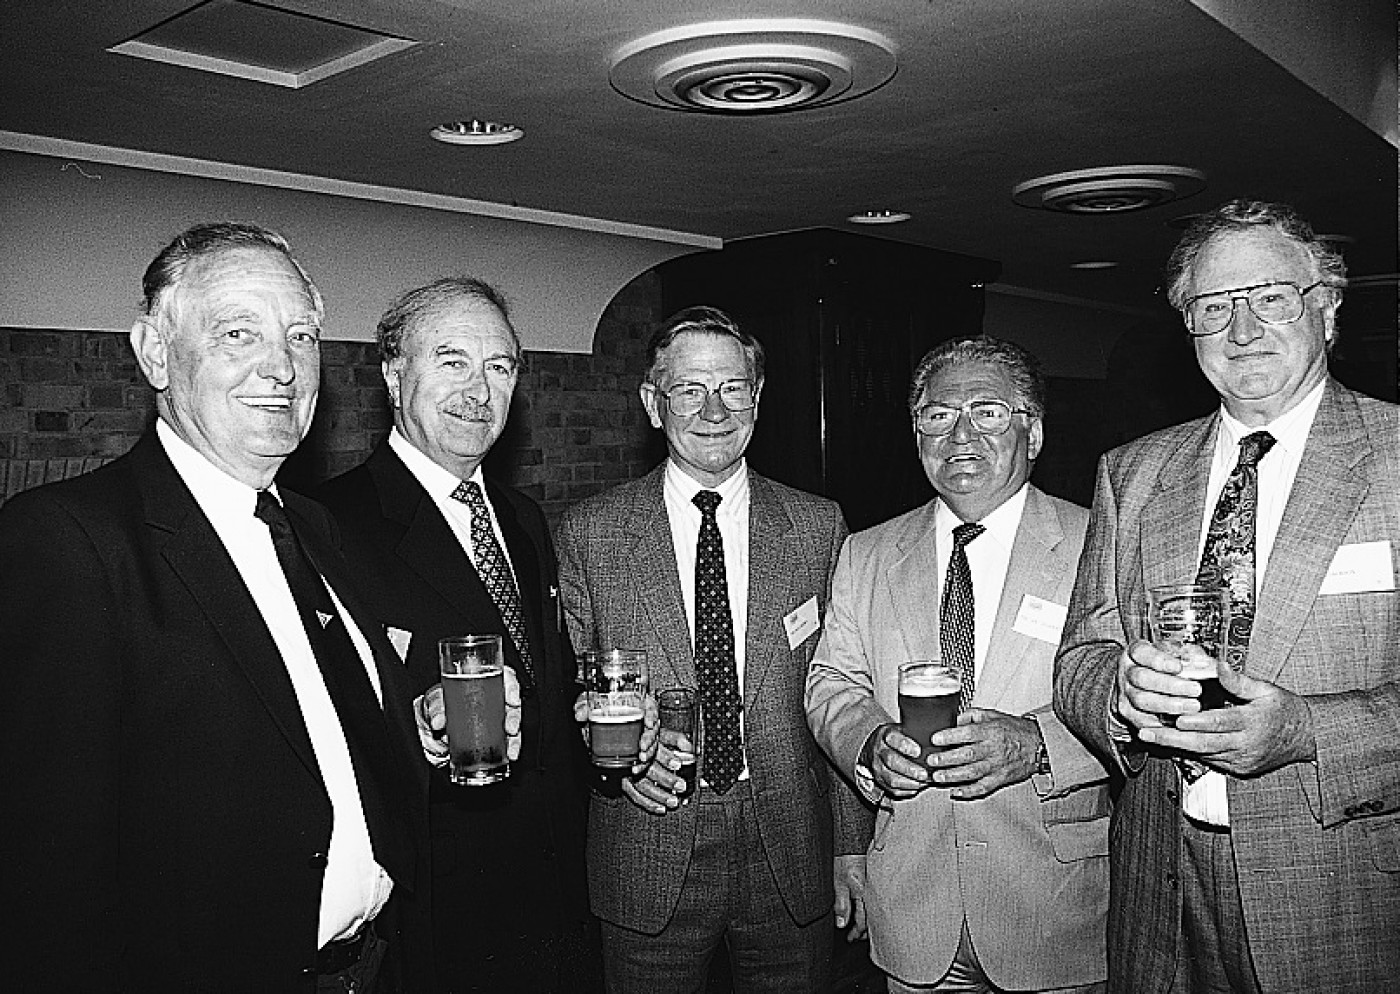 John Bolding, Harry Hodgkiss, Ray Hobbs, George Ackers and Gordon Jackson I3 1999 P15